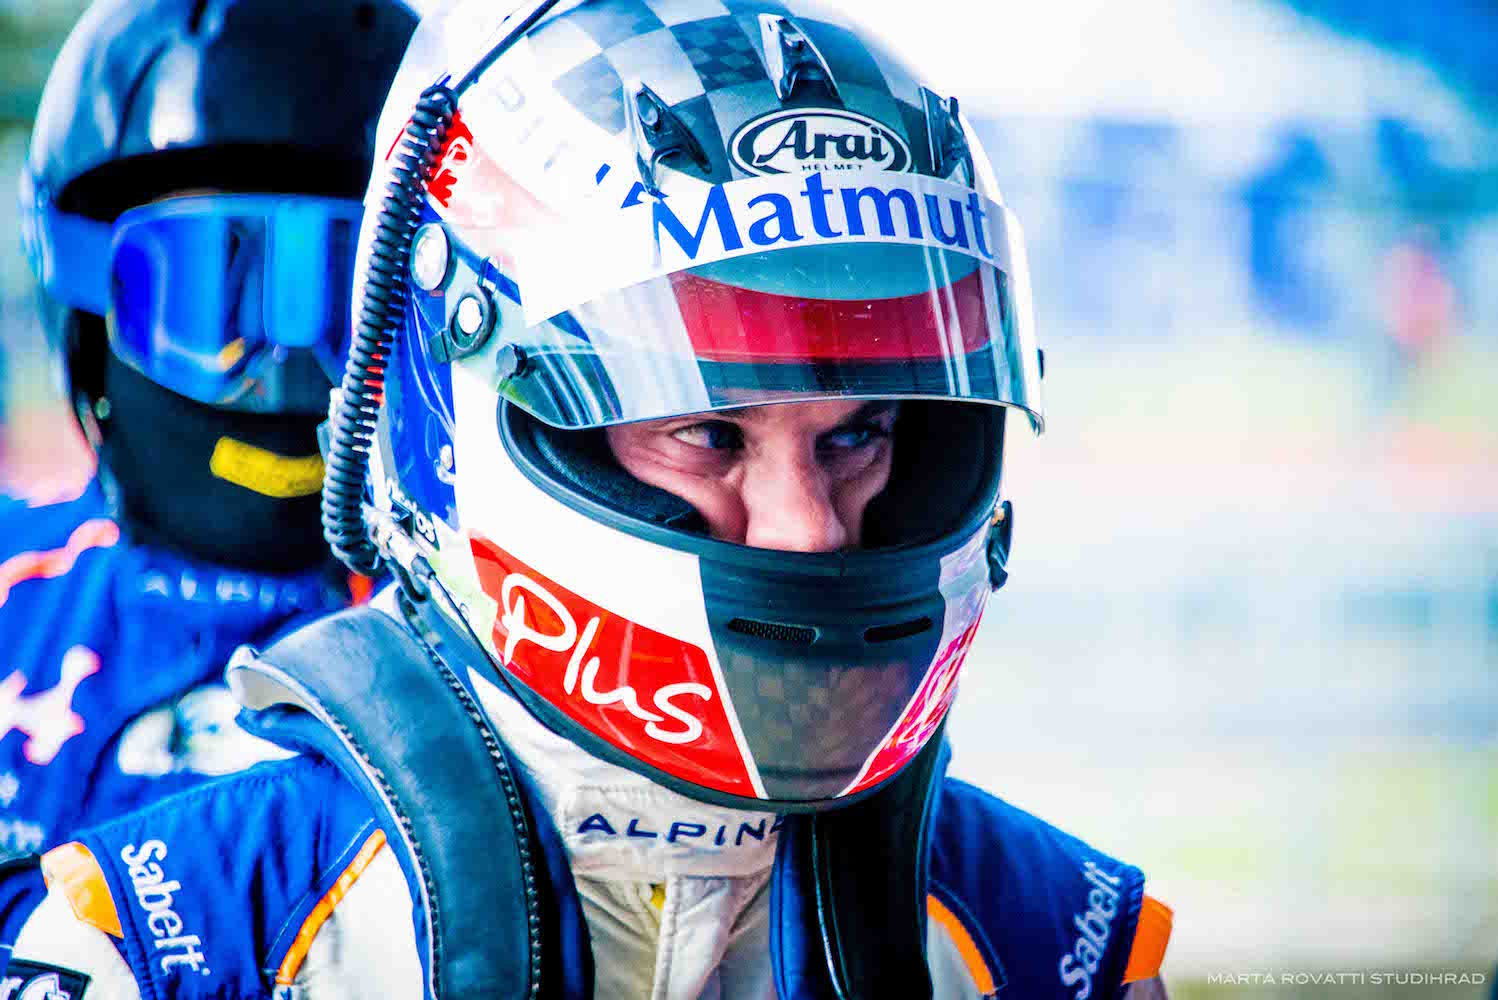 Spacesuit-Media-Marta-Rovatti-Studihrad-FIA-Formula-E-Marrakesh-ePrix-November-2016MGR_9416